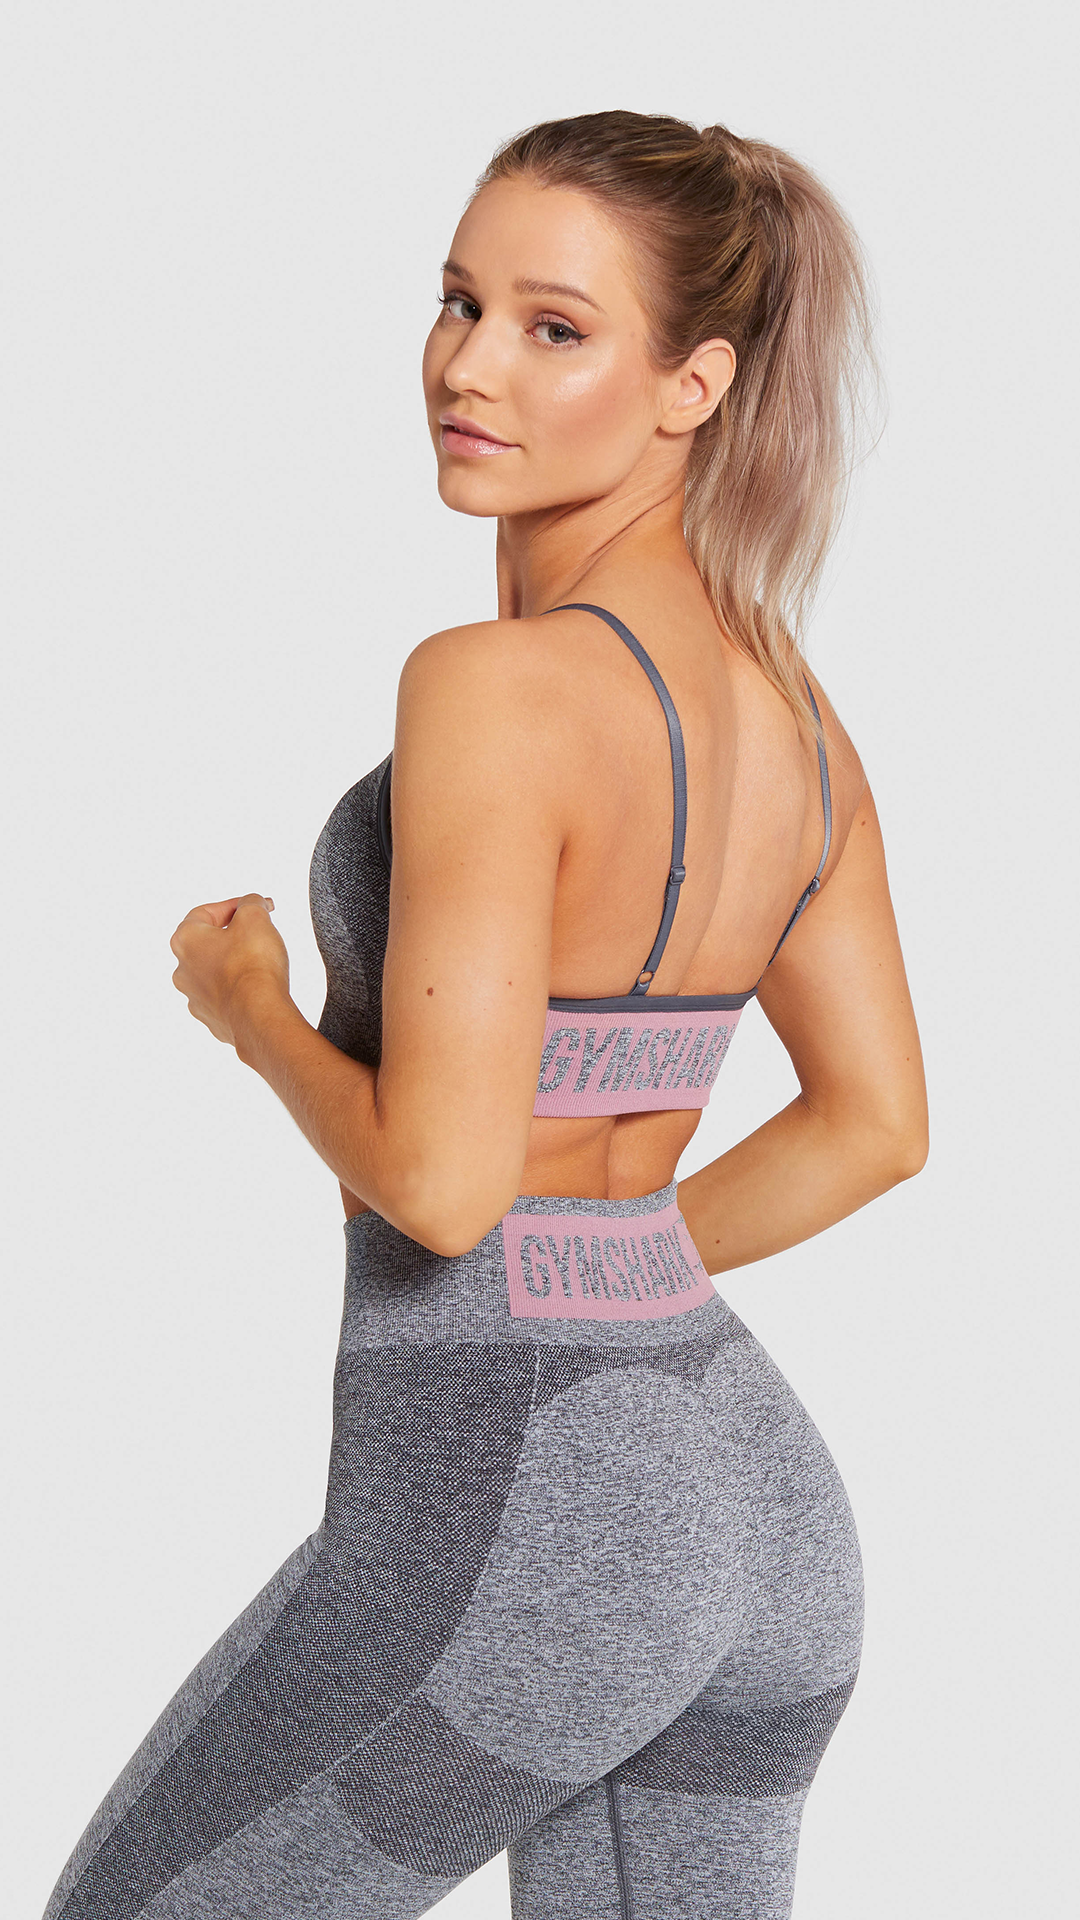 38b175009e Look and feel amazing in the High Waisted Flex. It s time to Flex ...